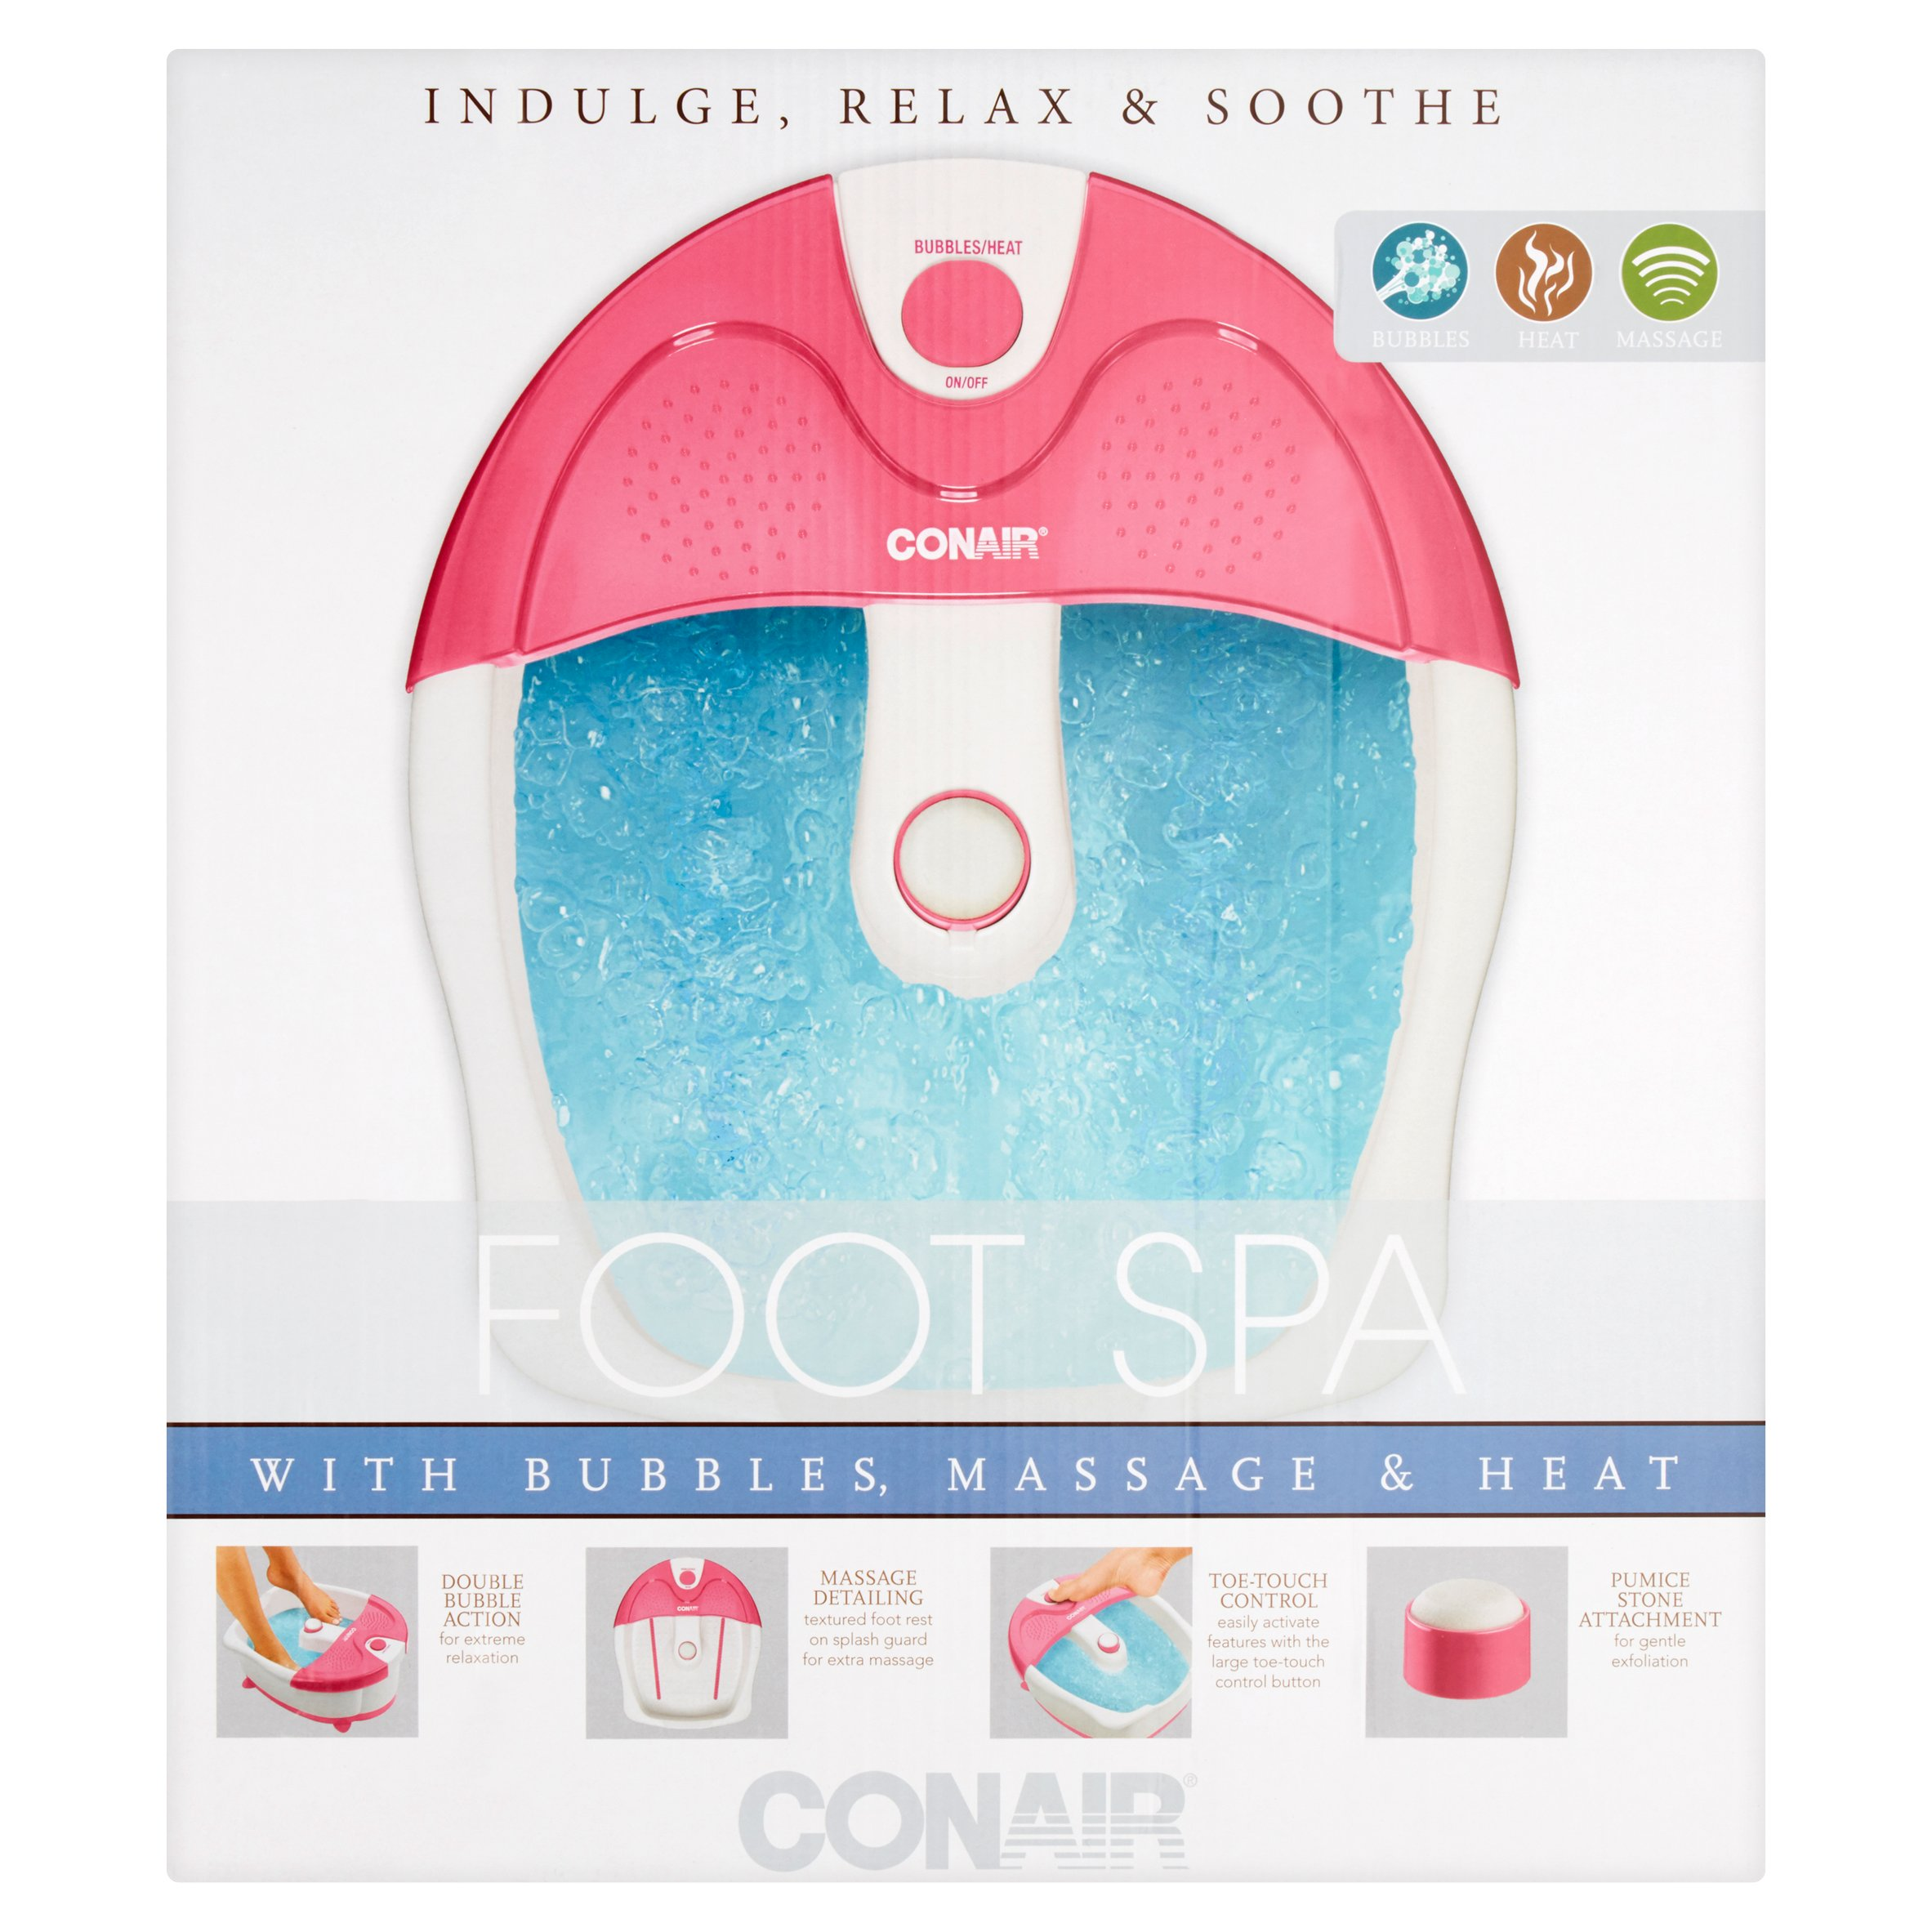 Conair Foots Spa with Bubbles, Massage & Heat